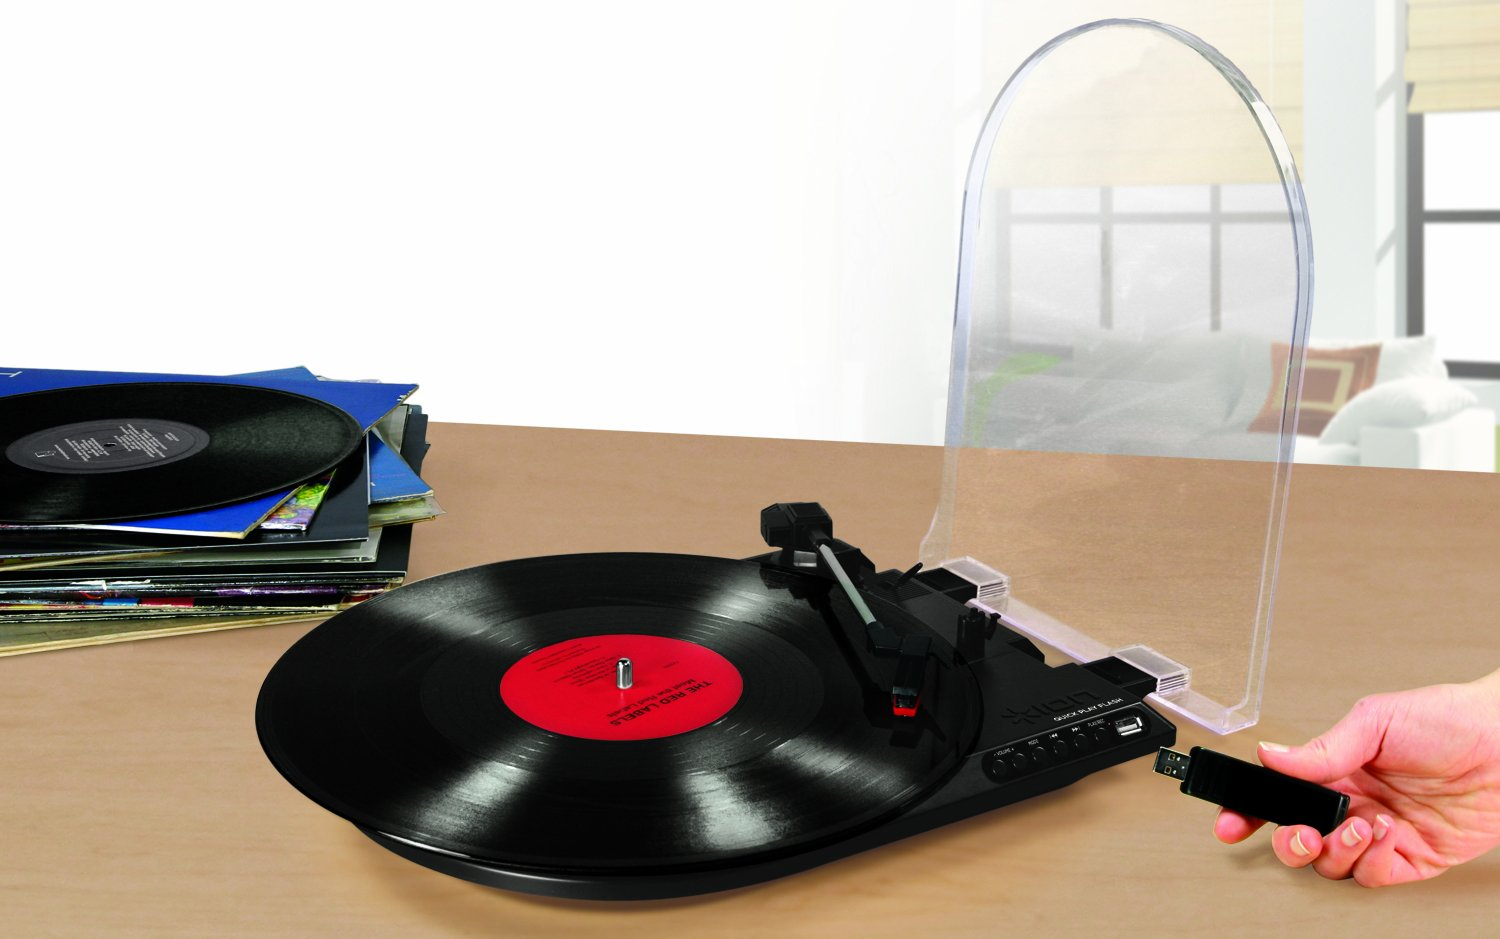 Đầu đĩa ION IT28 Quick Play Flash Conversion Turntable with USB Flash Drive